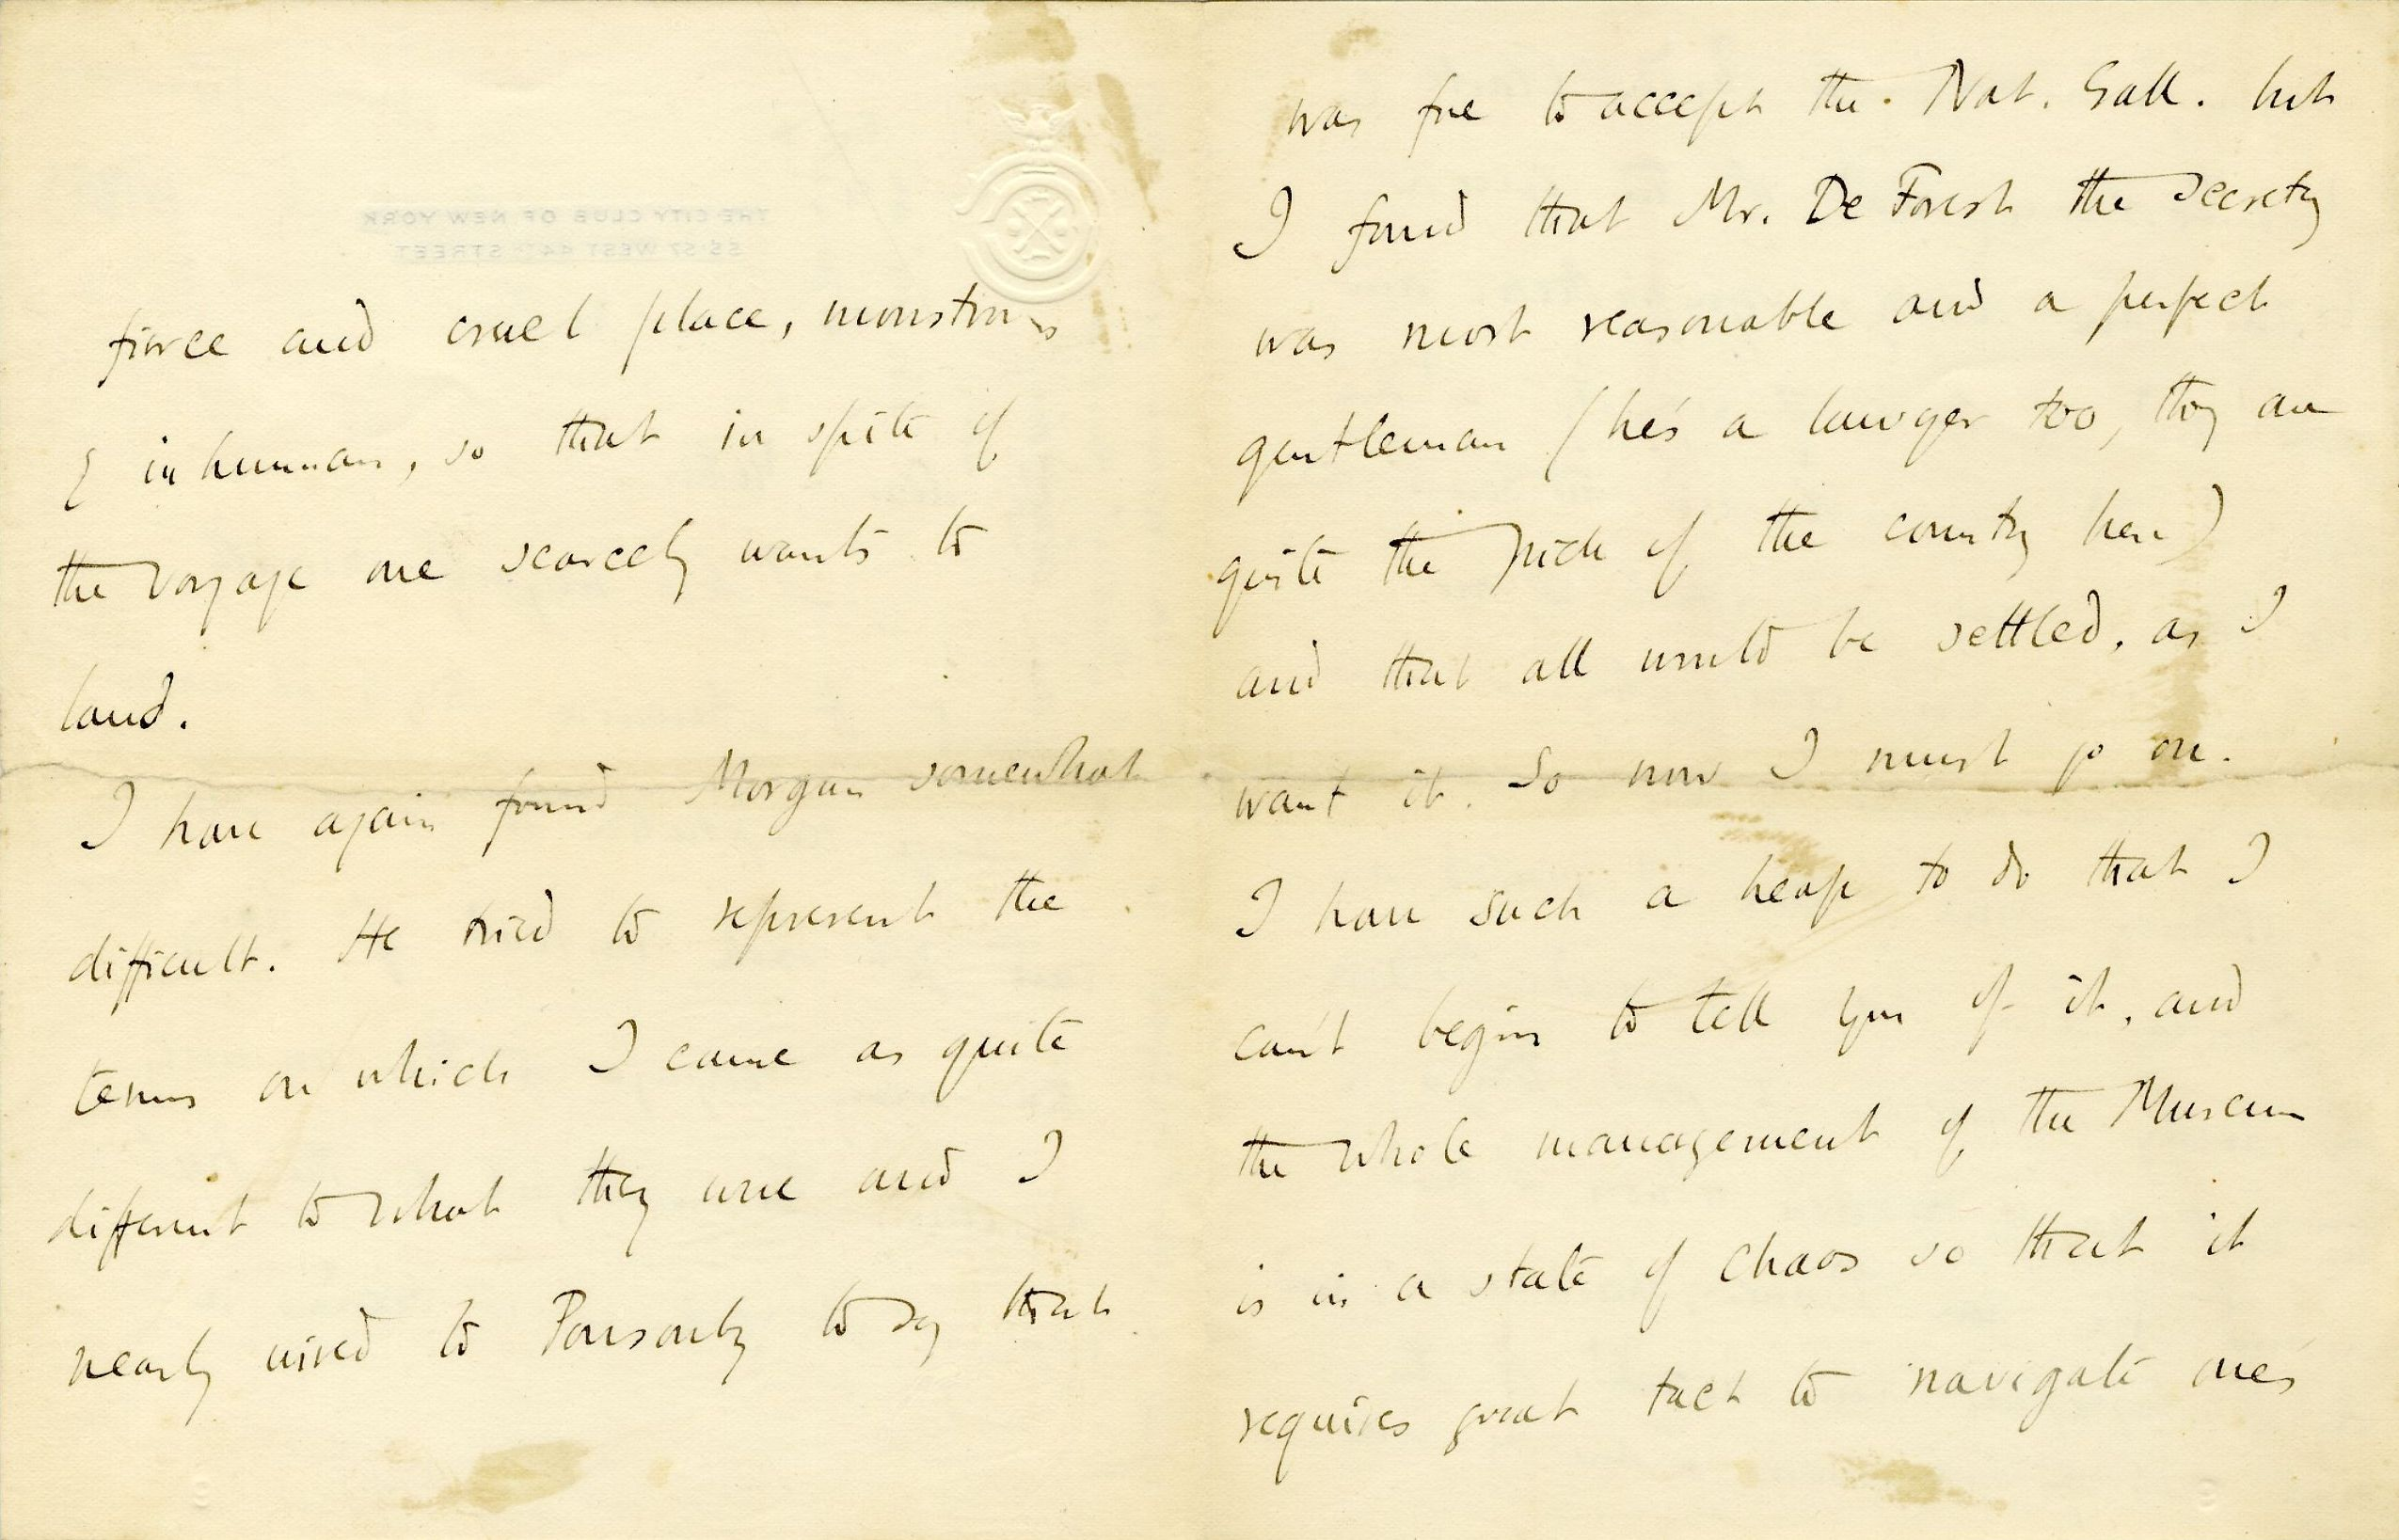 Letter from Roger Fry to Lady Fry, 1906, concerning the offer from the National Gallery. [REF/3/57/35]